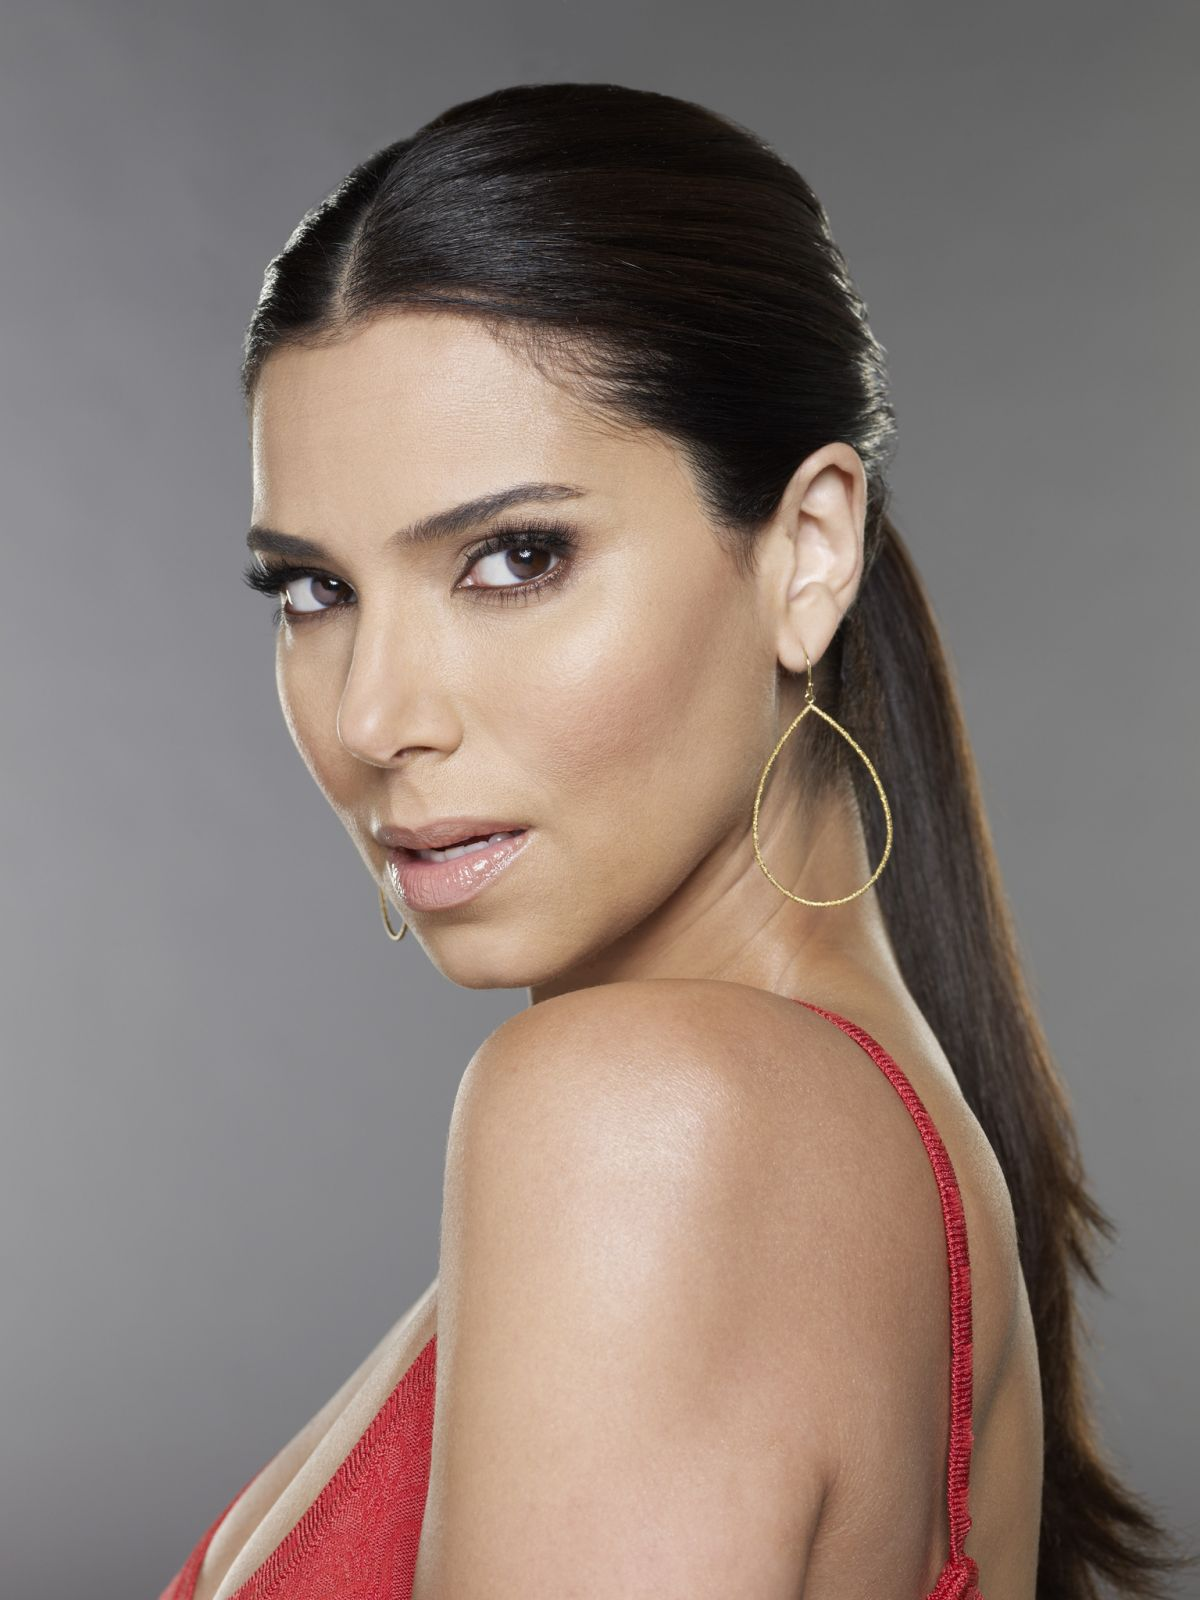 Nude Pictures Of Roselyn Sanchez